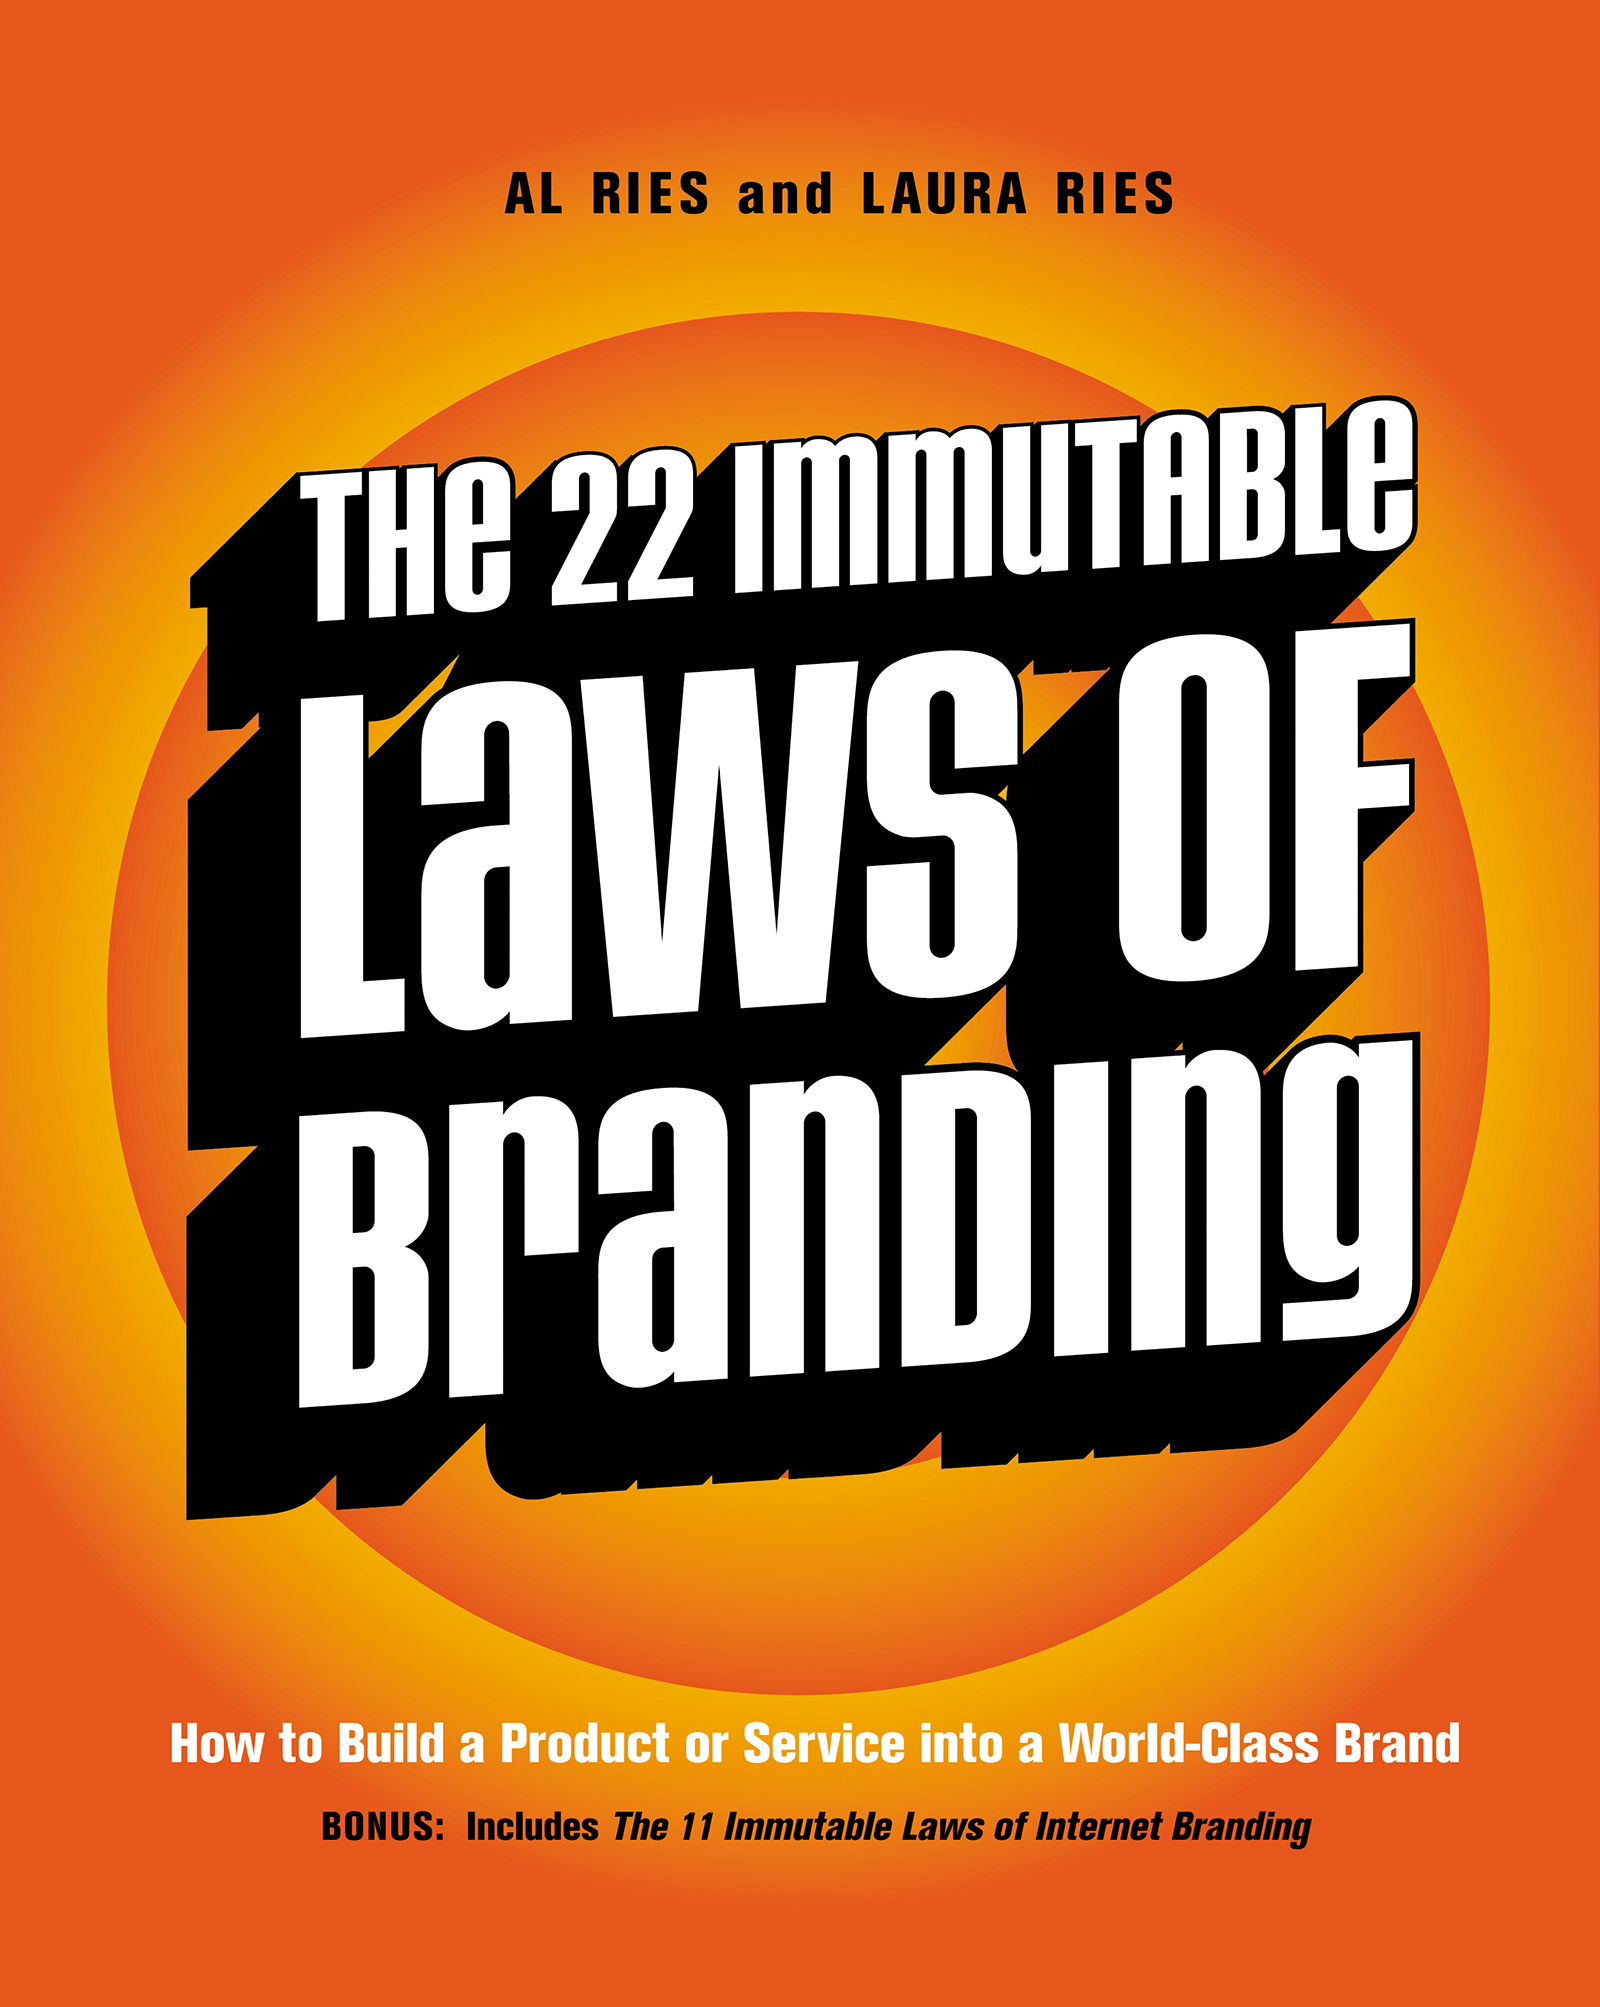 Download Ebook The 22 Immutable Laws of Branding by Al Ries Pdf